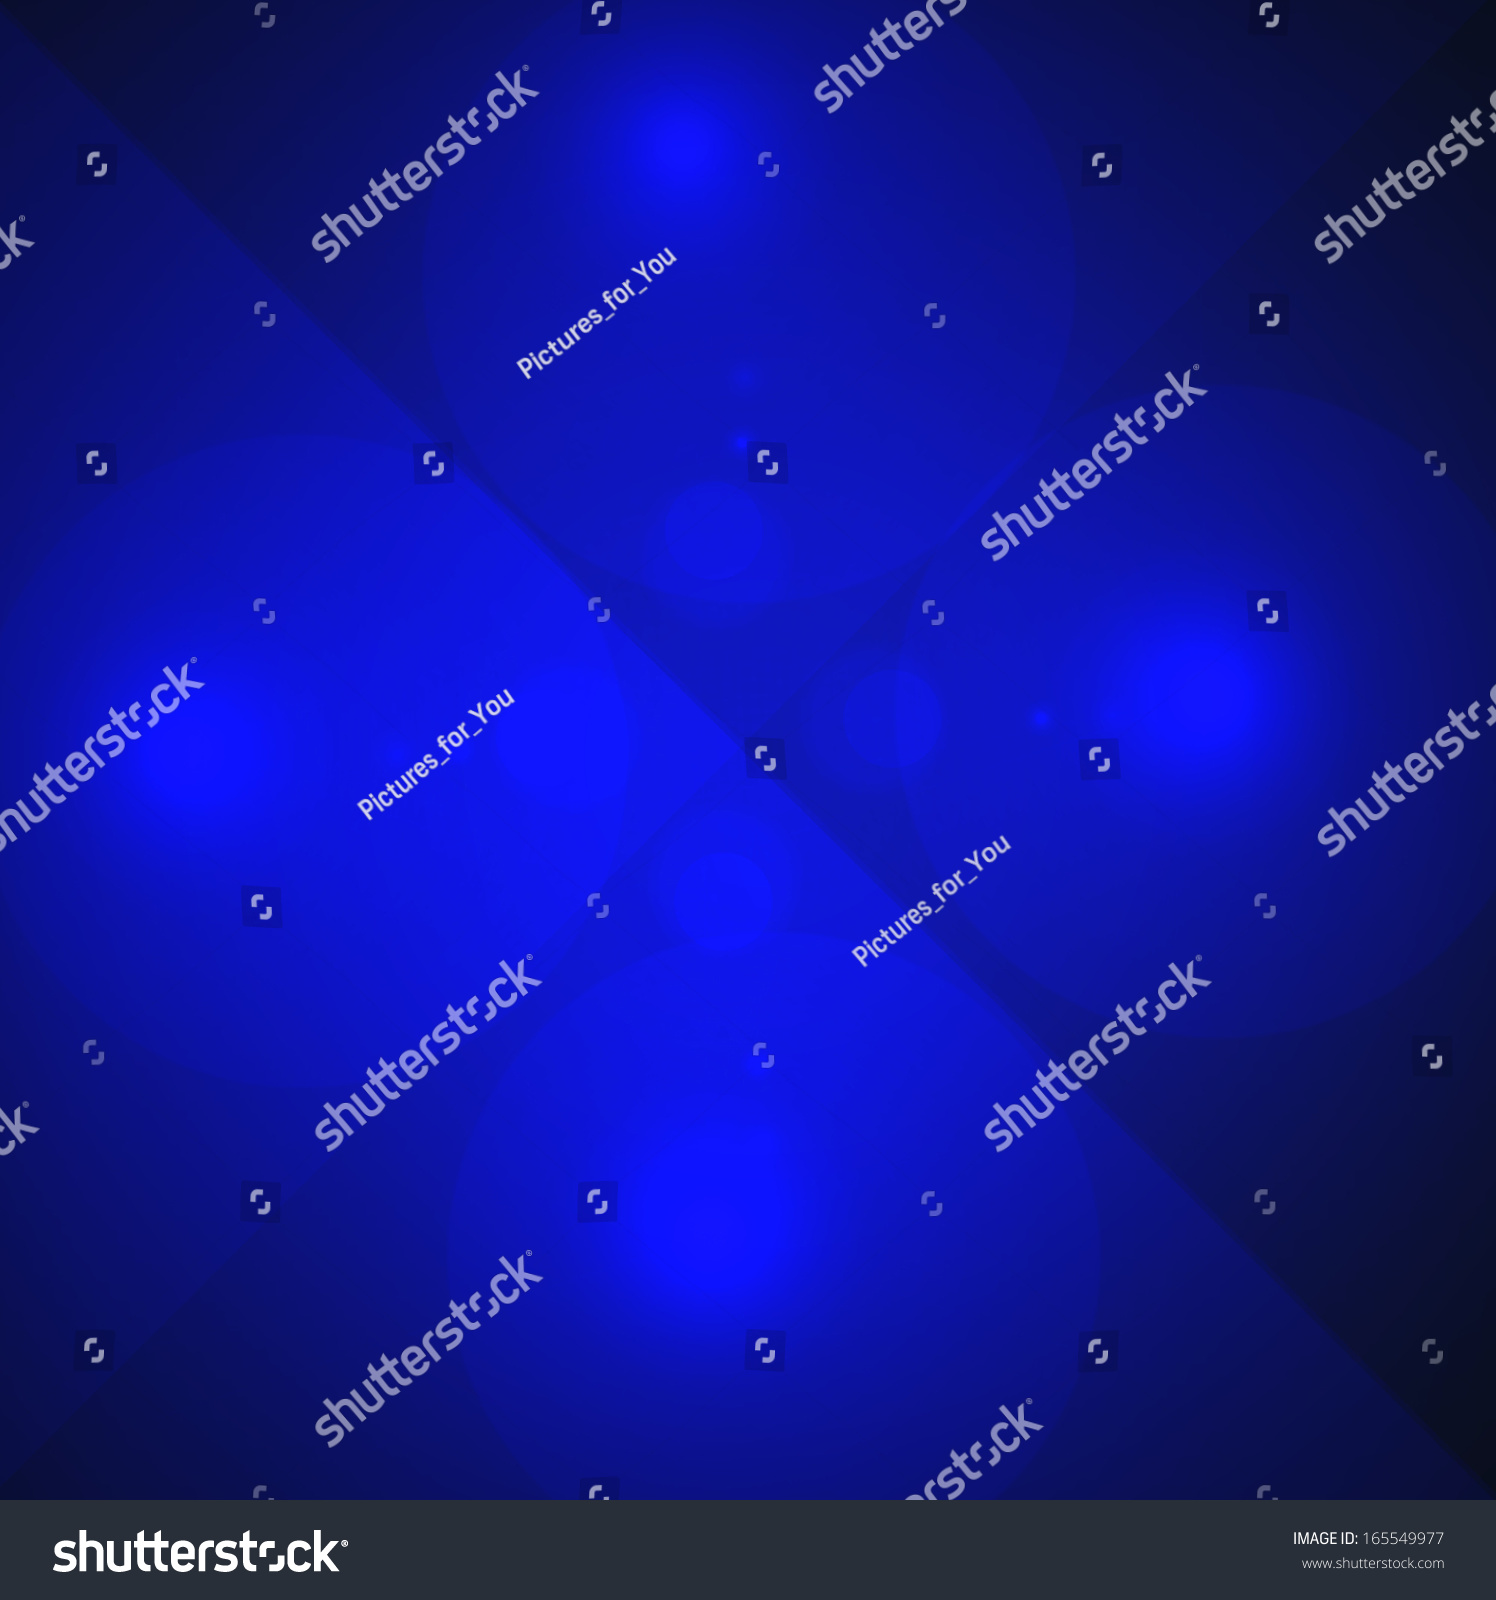 blue abstract light effect - photo #34